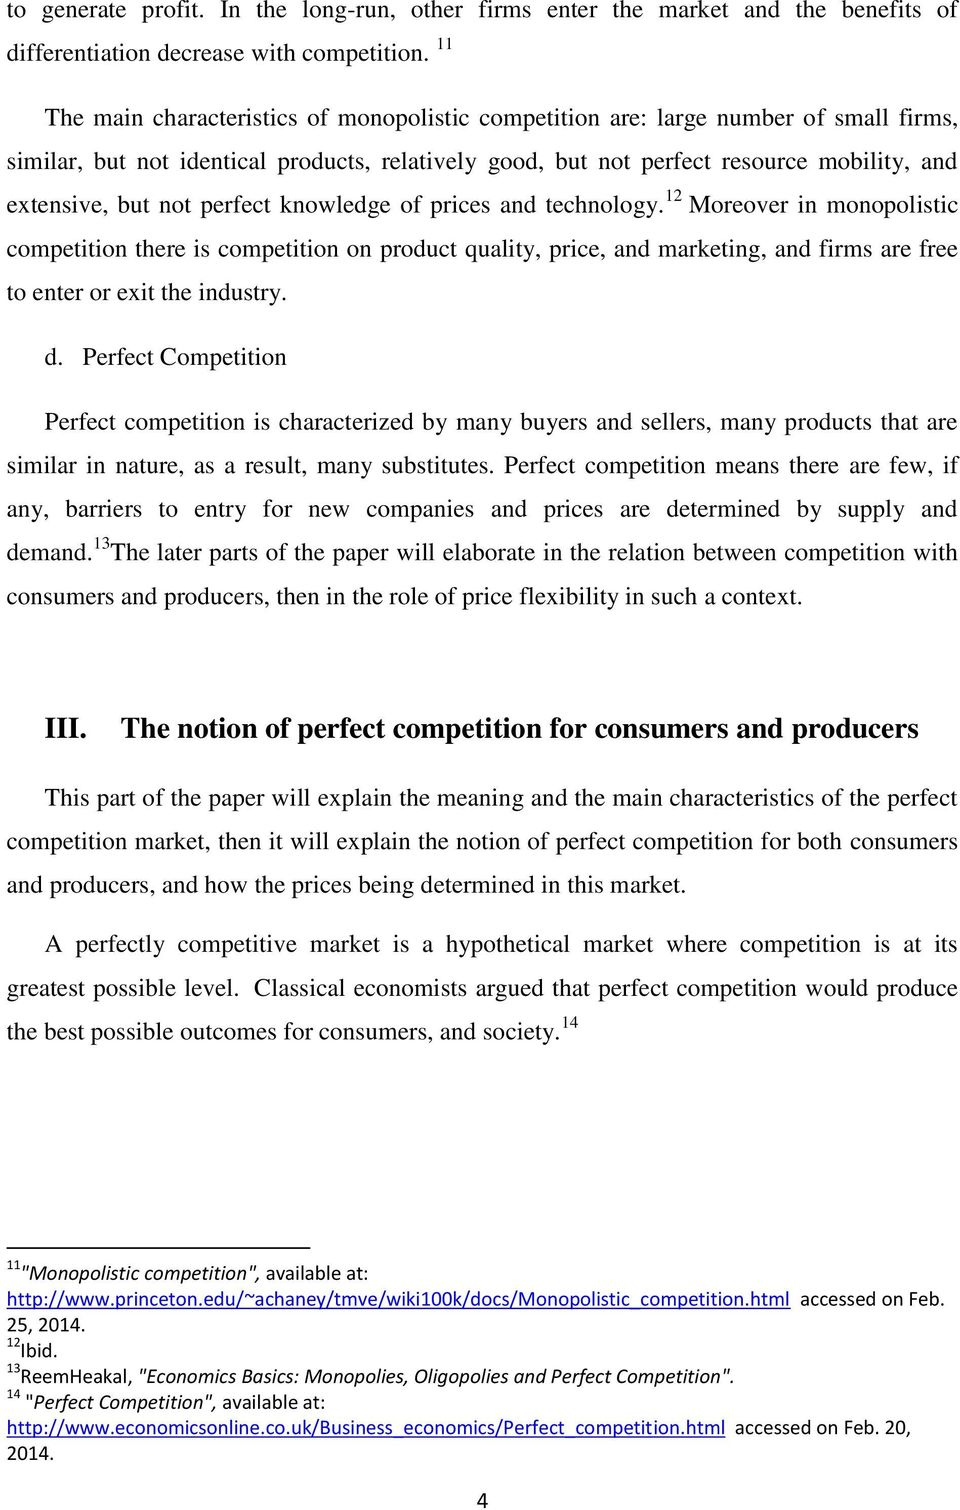 Perfect and imperfect competition: essence, characteristics, basic models